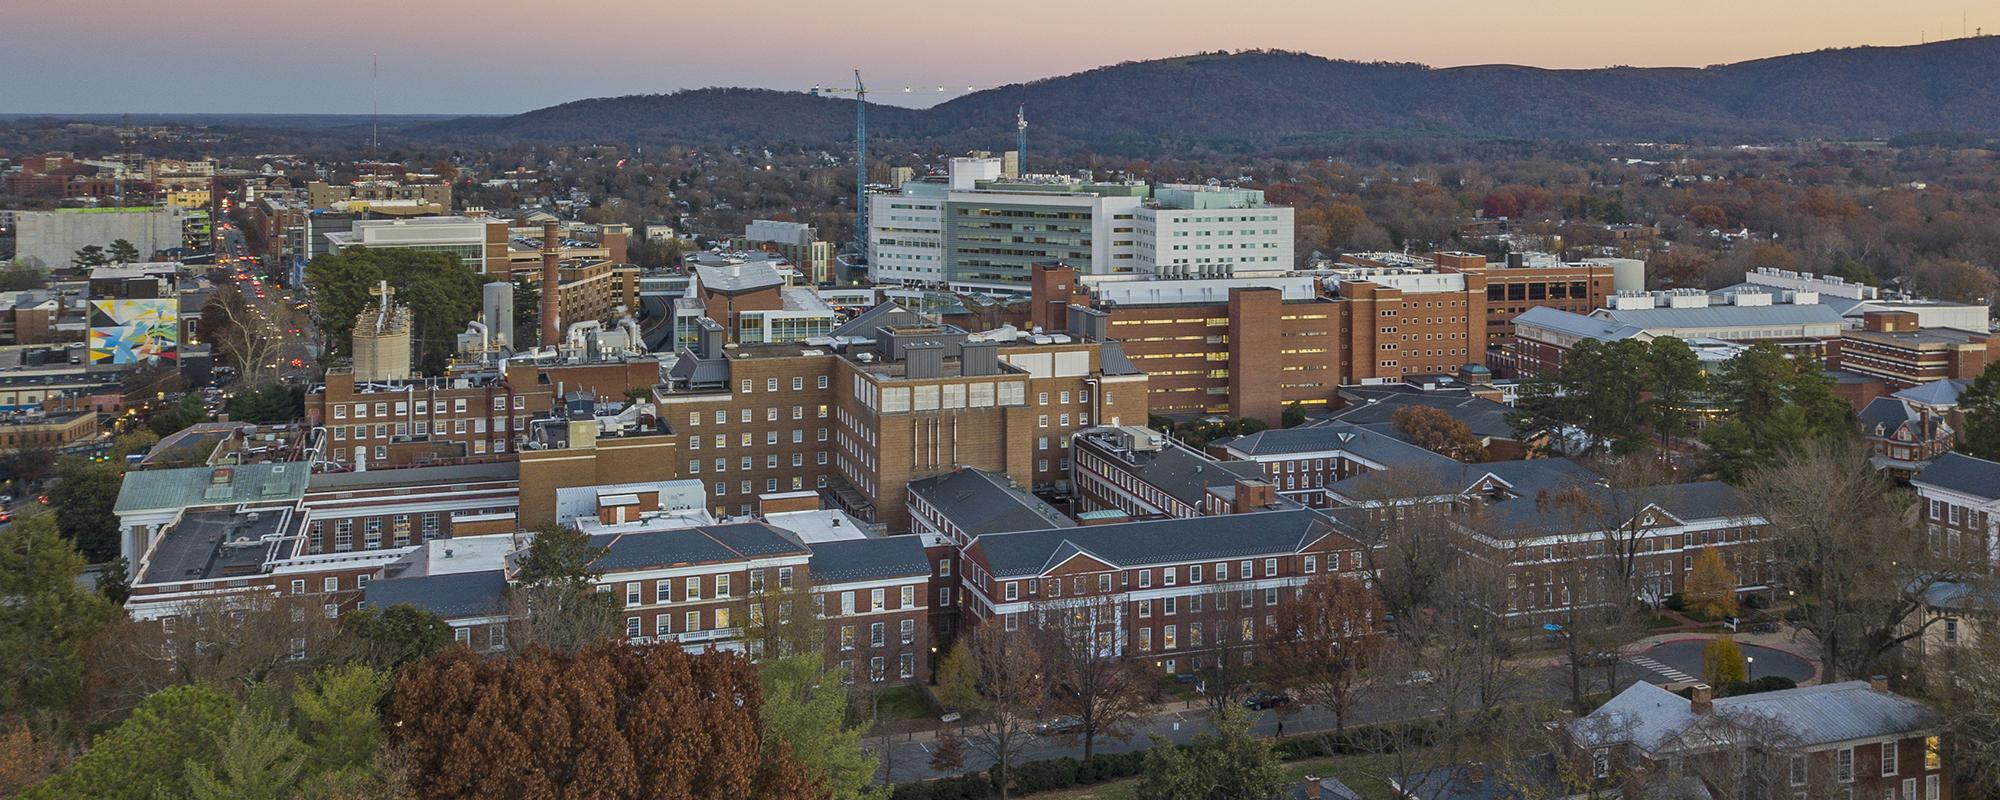 Aerial view of UVA Health System Buildings